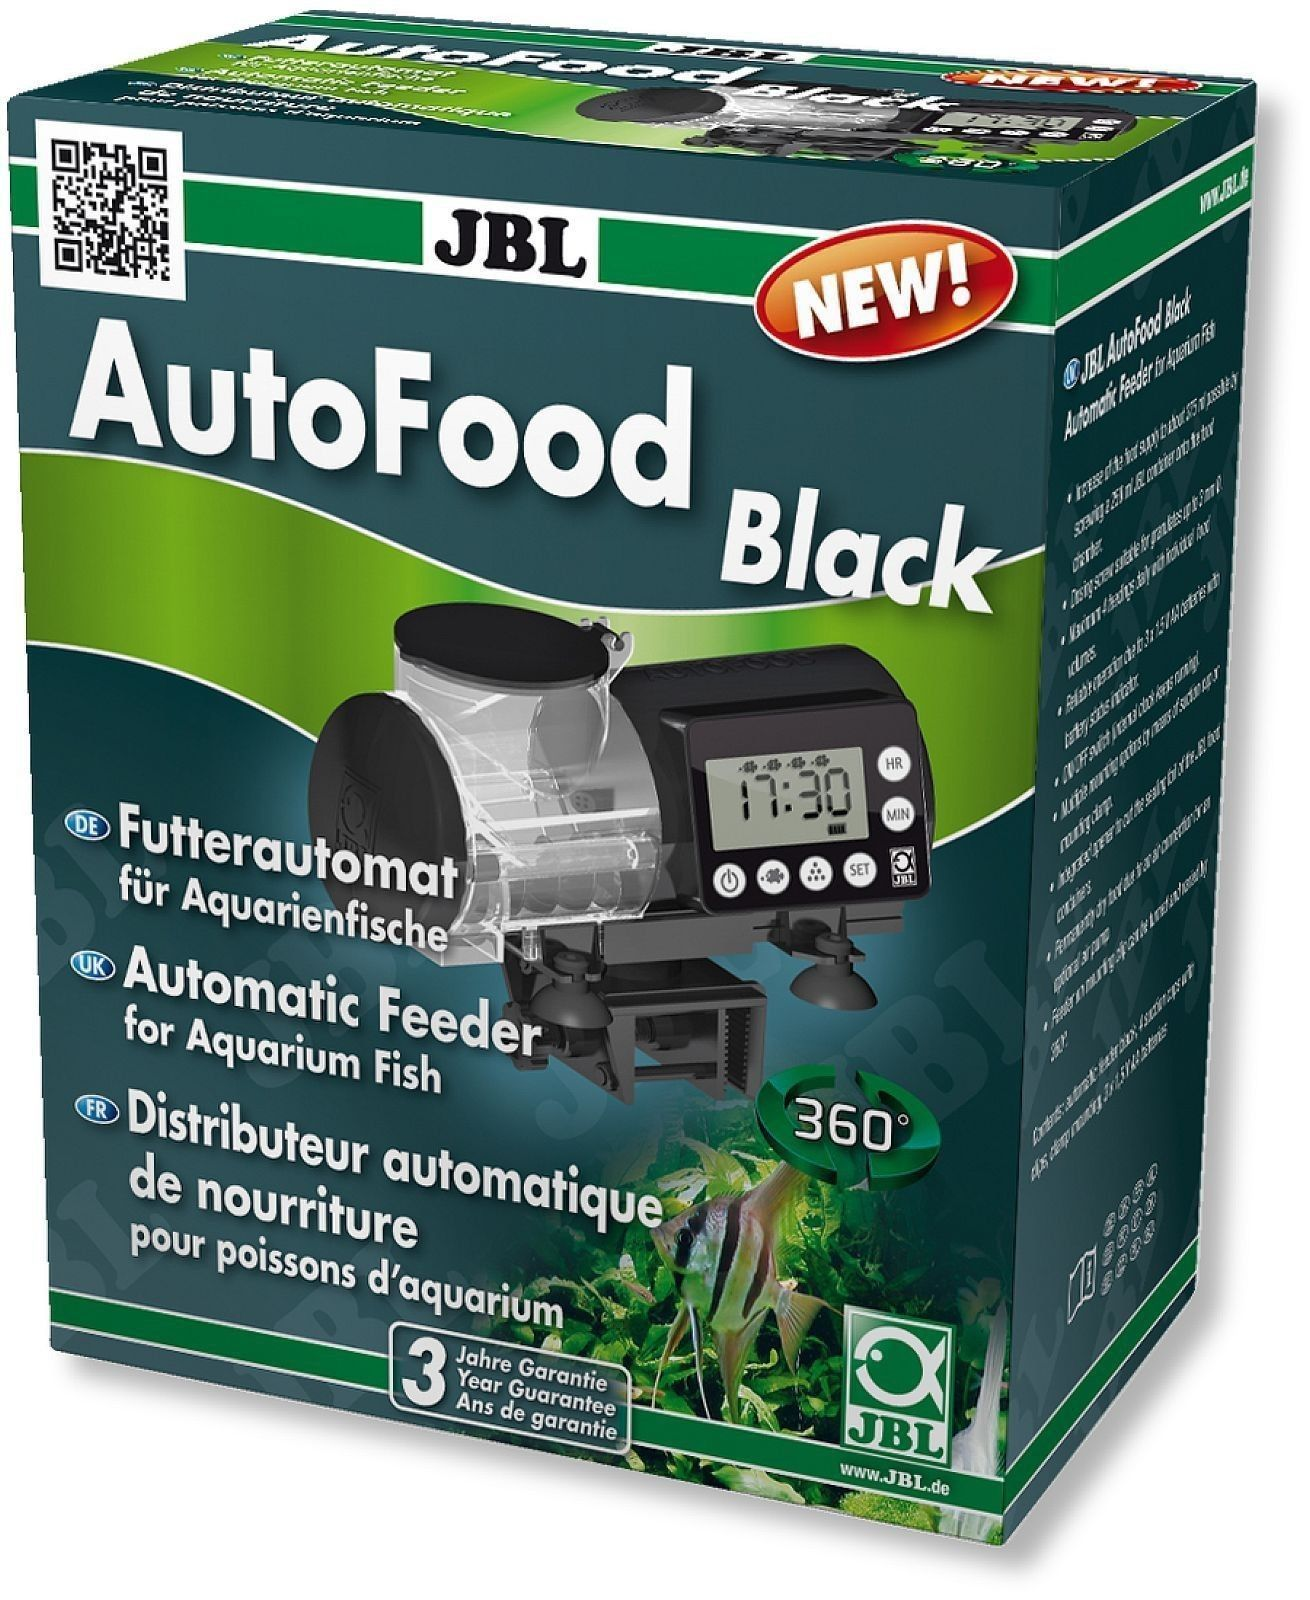 e easyfeed online mail find feeder l aquarium products automatic fg facebook purchase accessories futterautomaten juwel fish auto en dealer